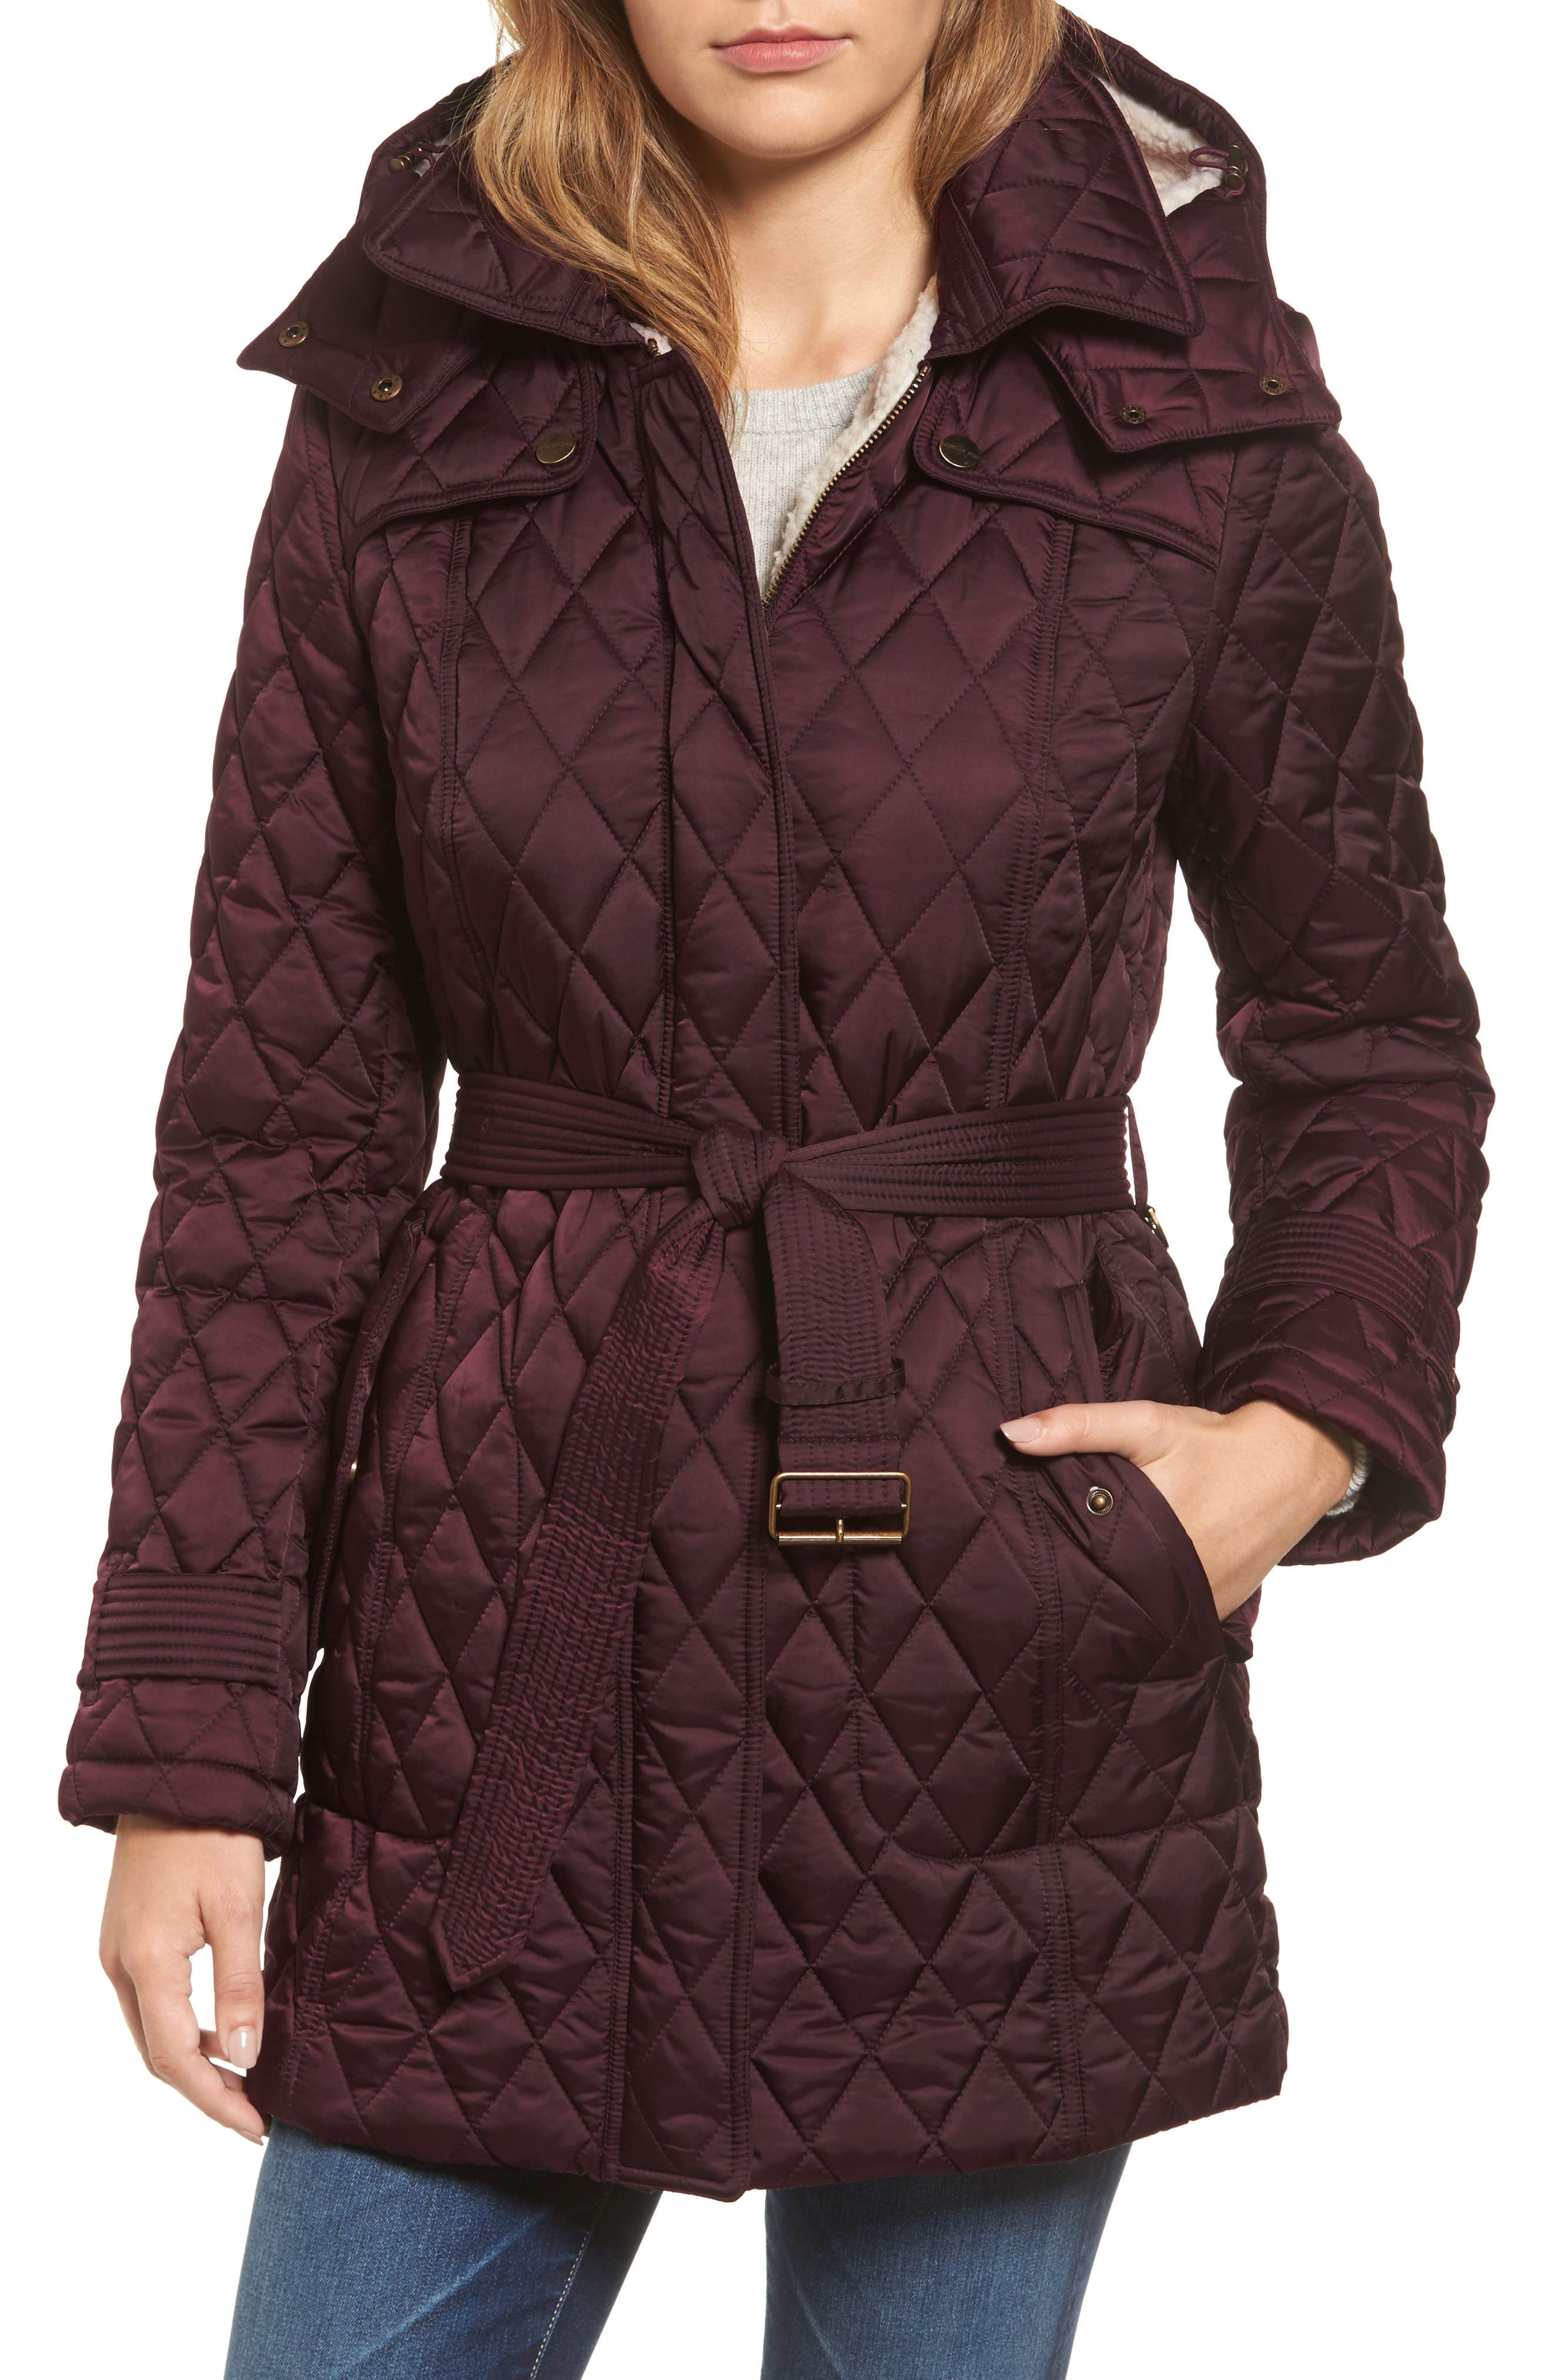 Main Image - London Fog Quilted Coat with Faux Shearling Lining